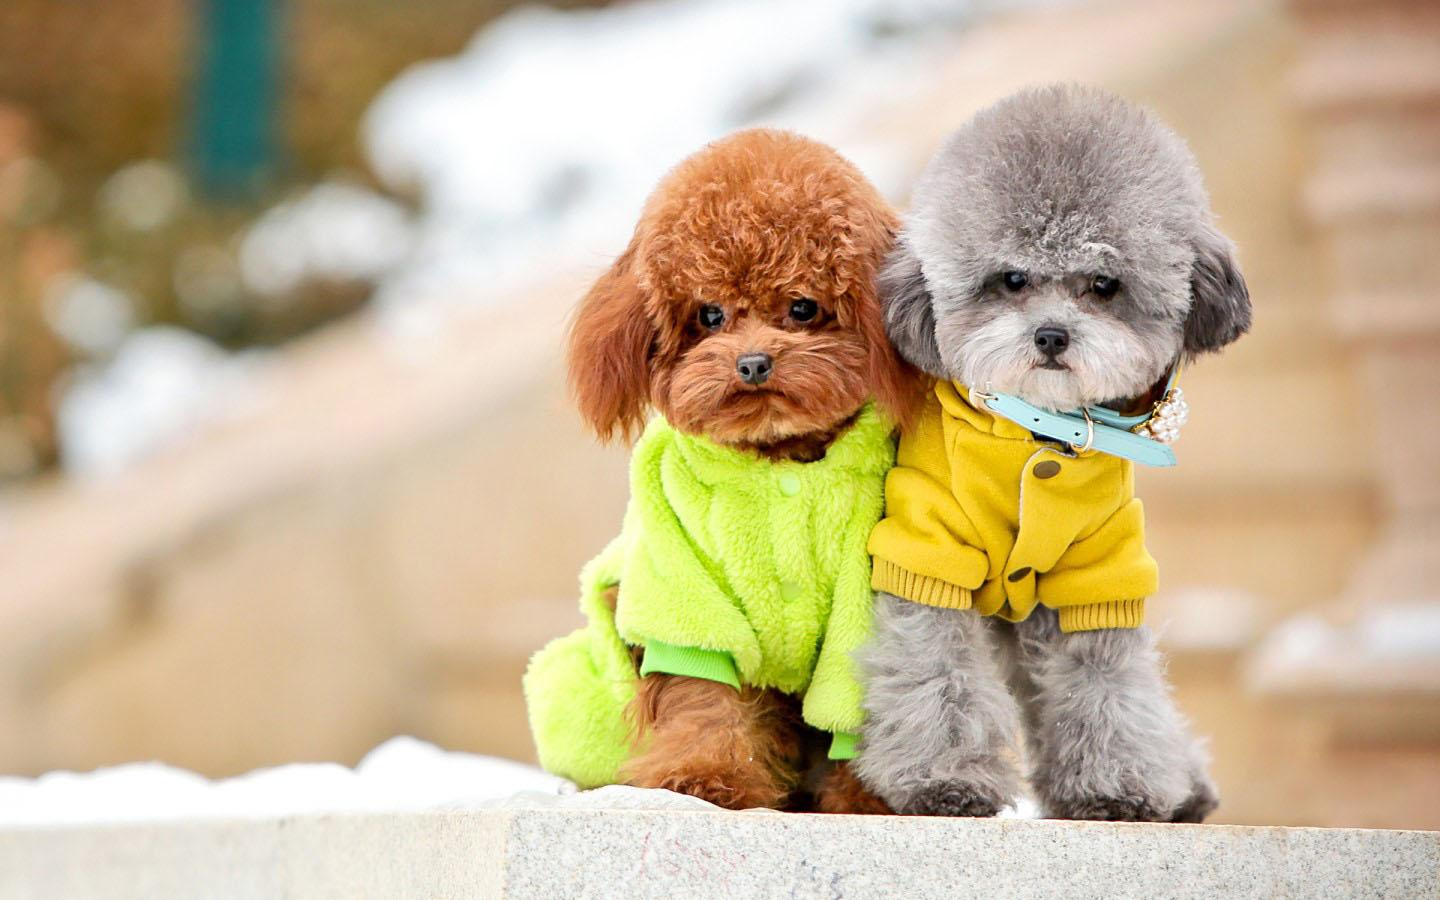 14 HD Poodle Dog Wallpapers Image Source From This